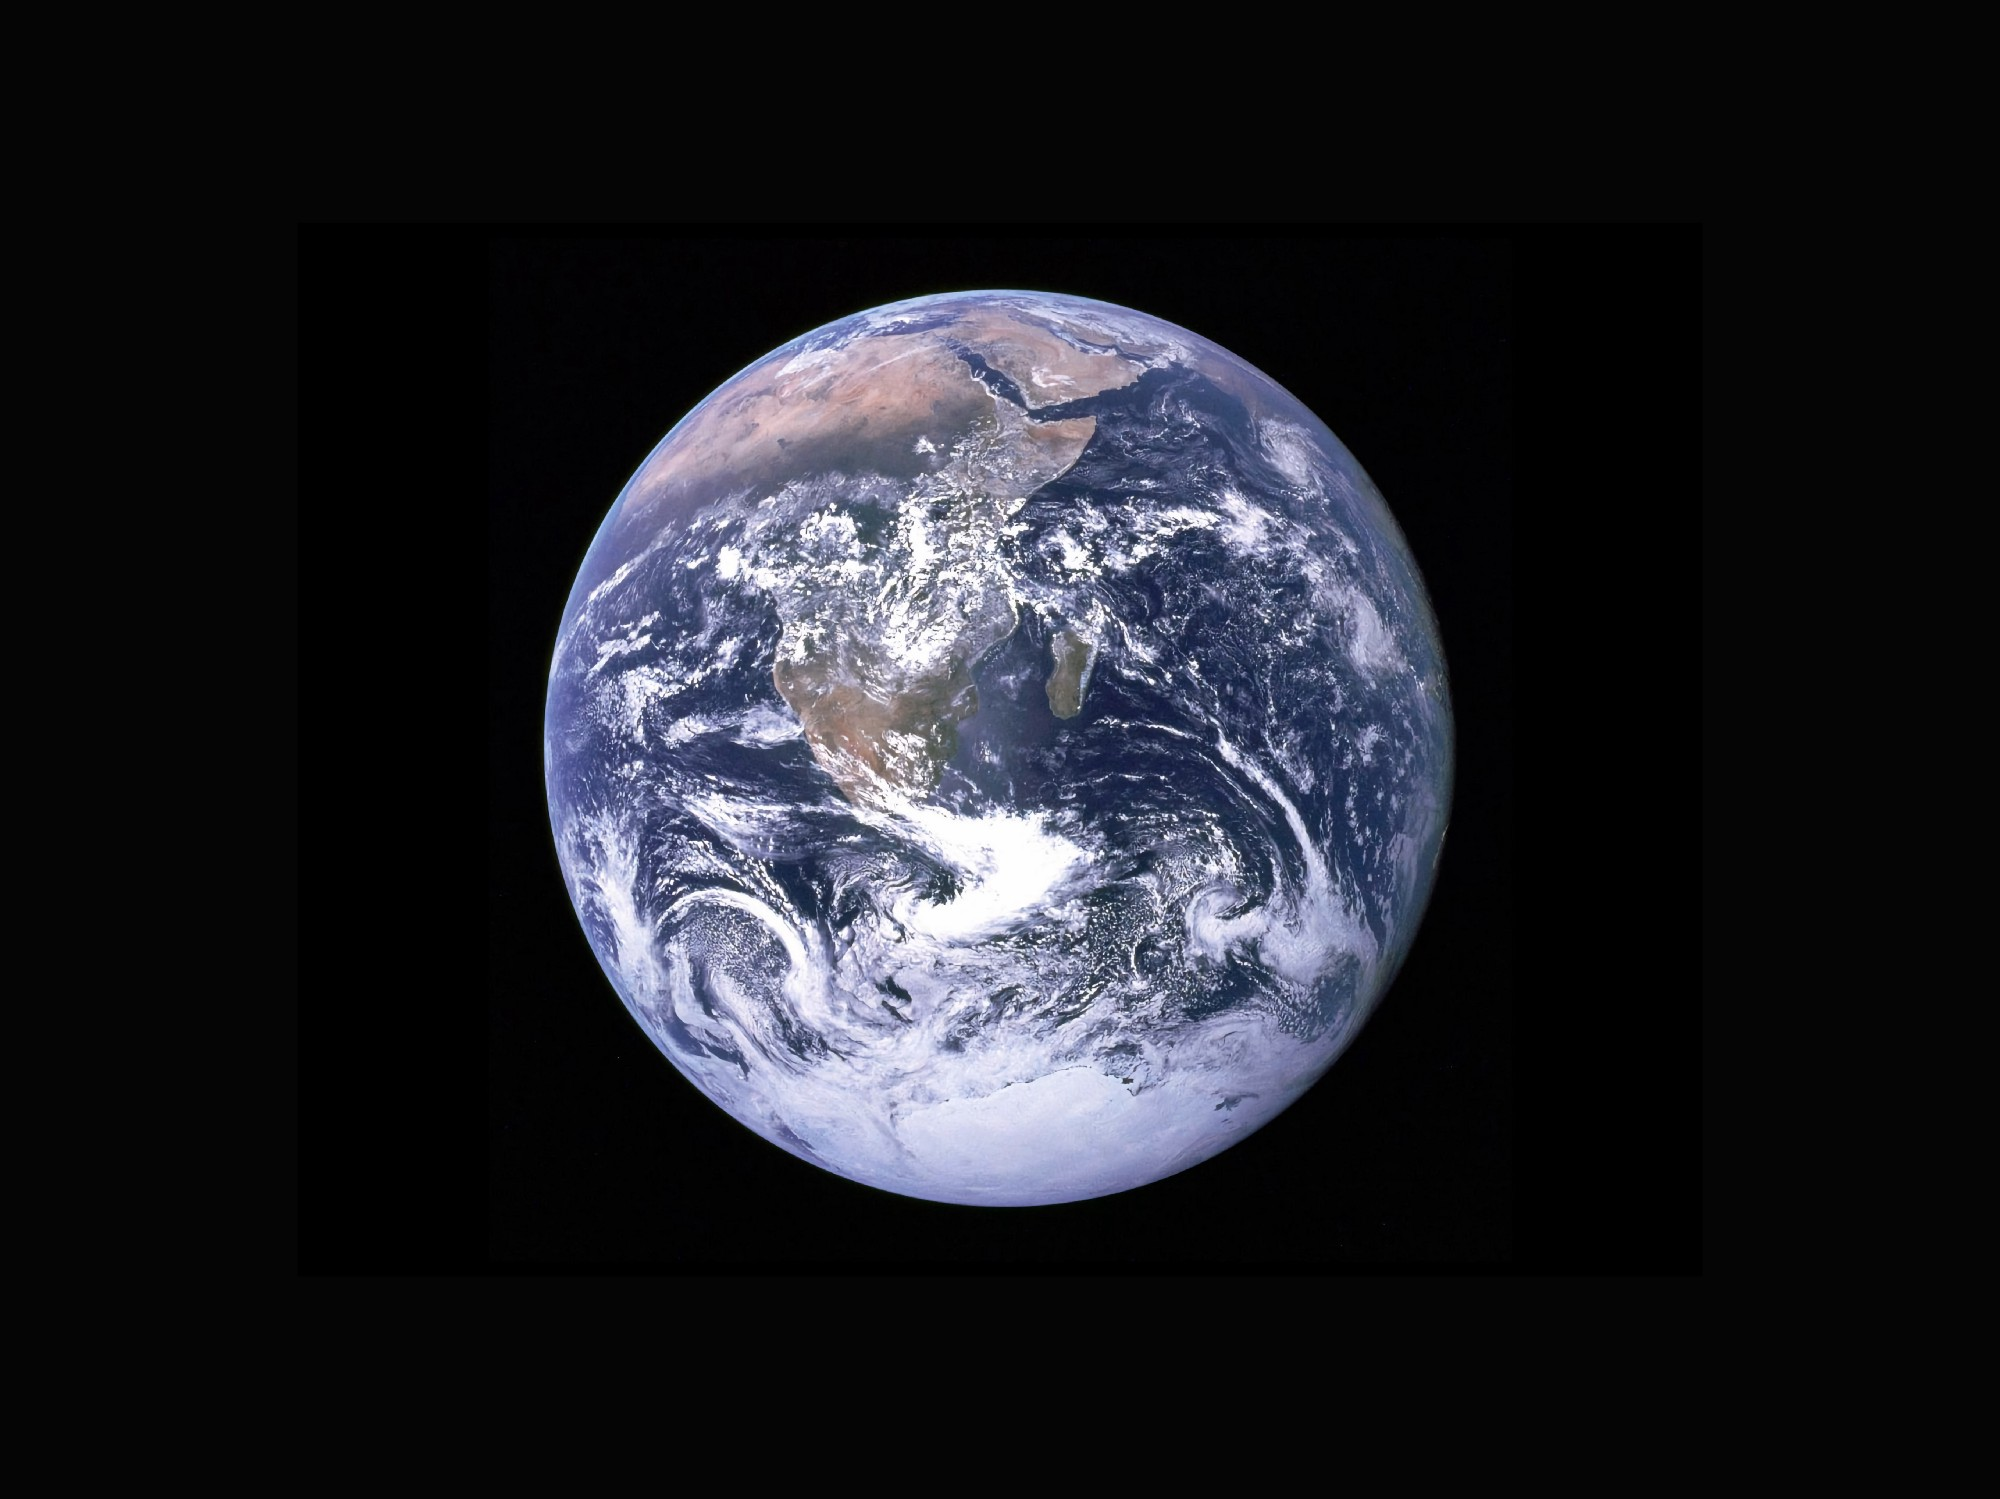 A photo of the earth from space